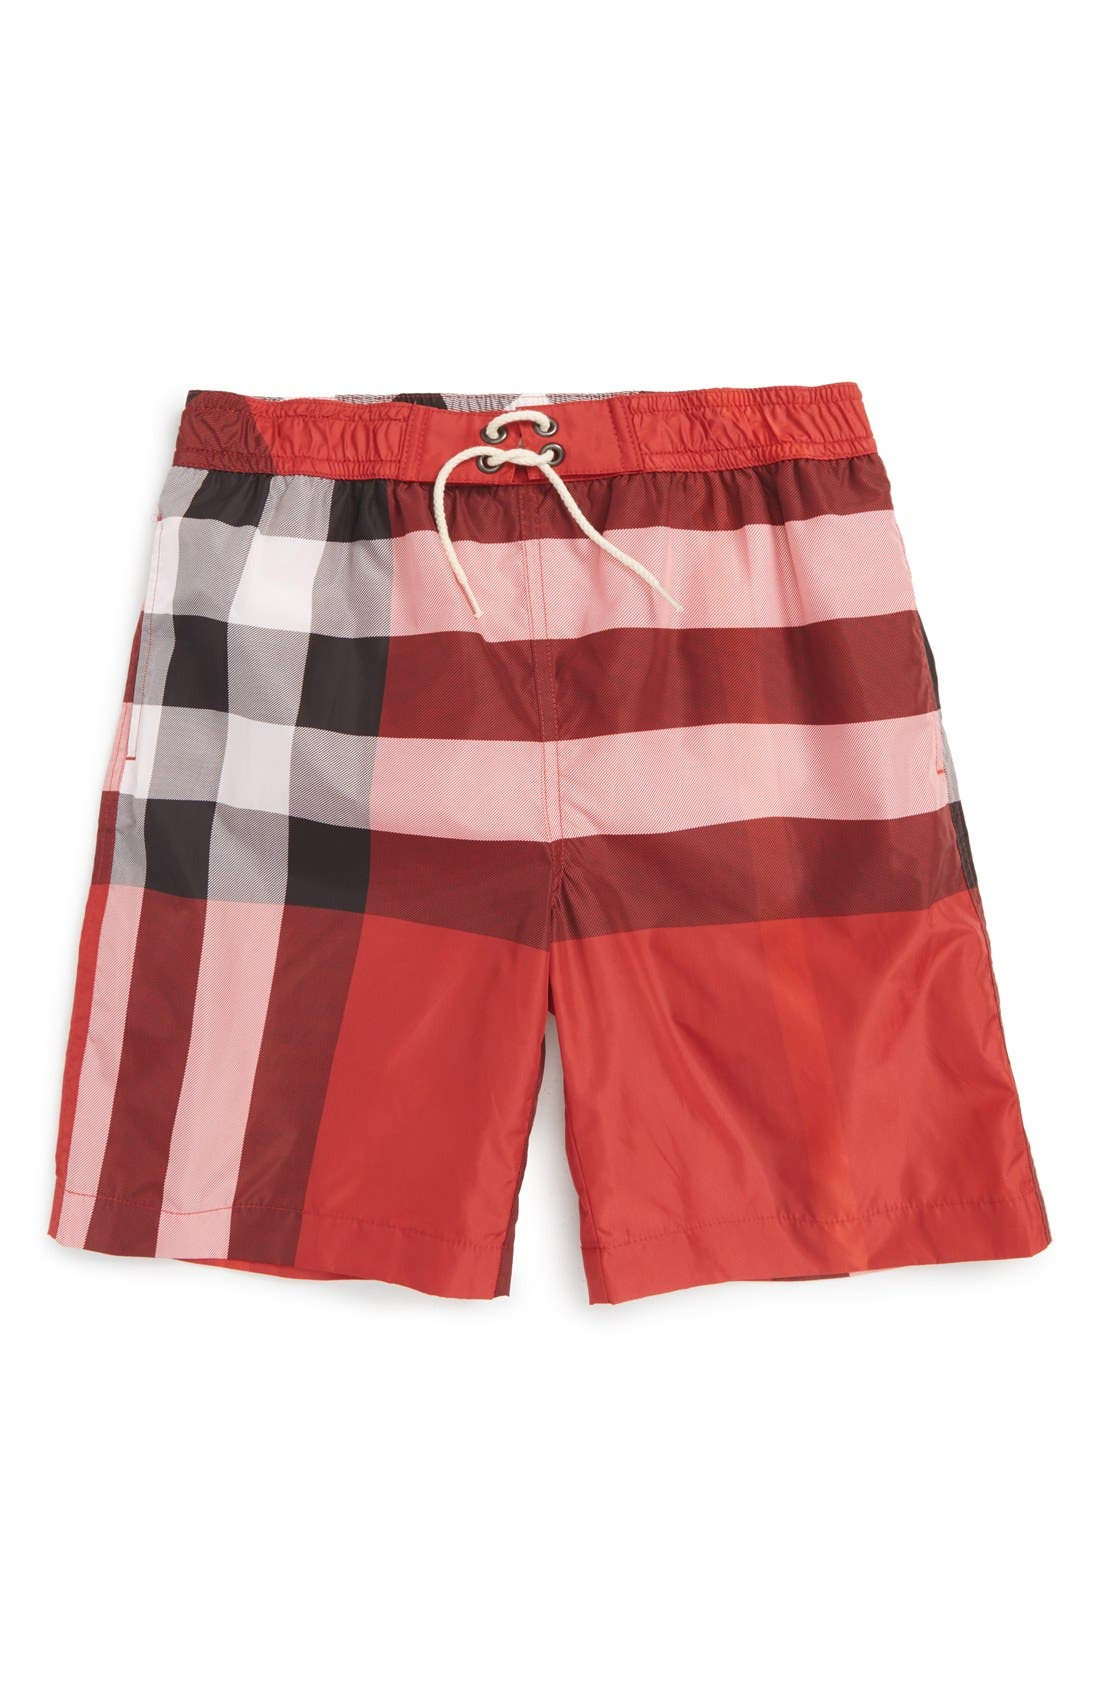 'Mini Jeffries' Swim Trunks,                             Main thumbnail 1, color,                             Parade Red